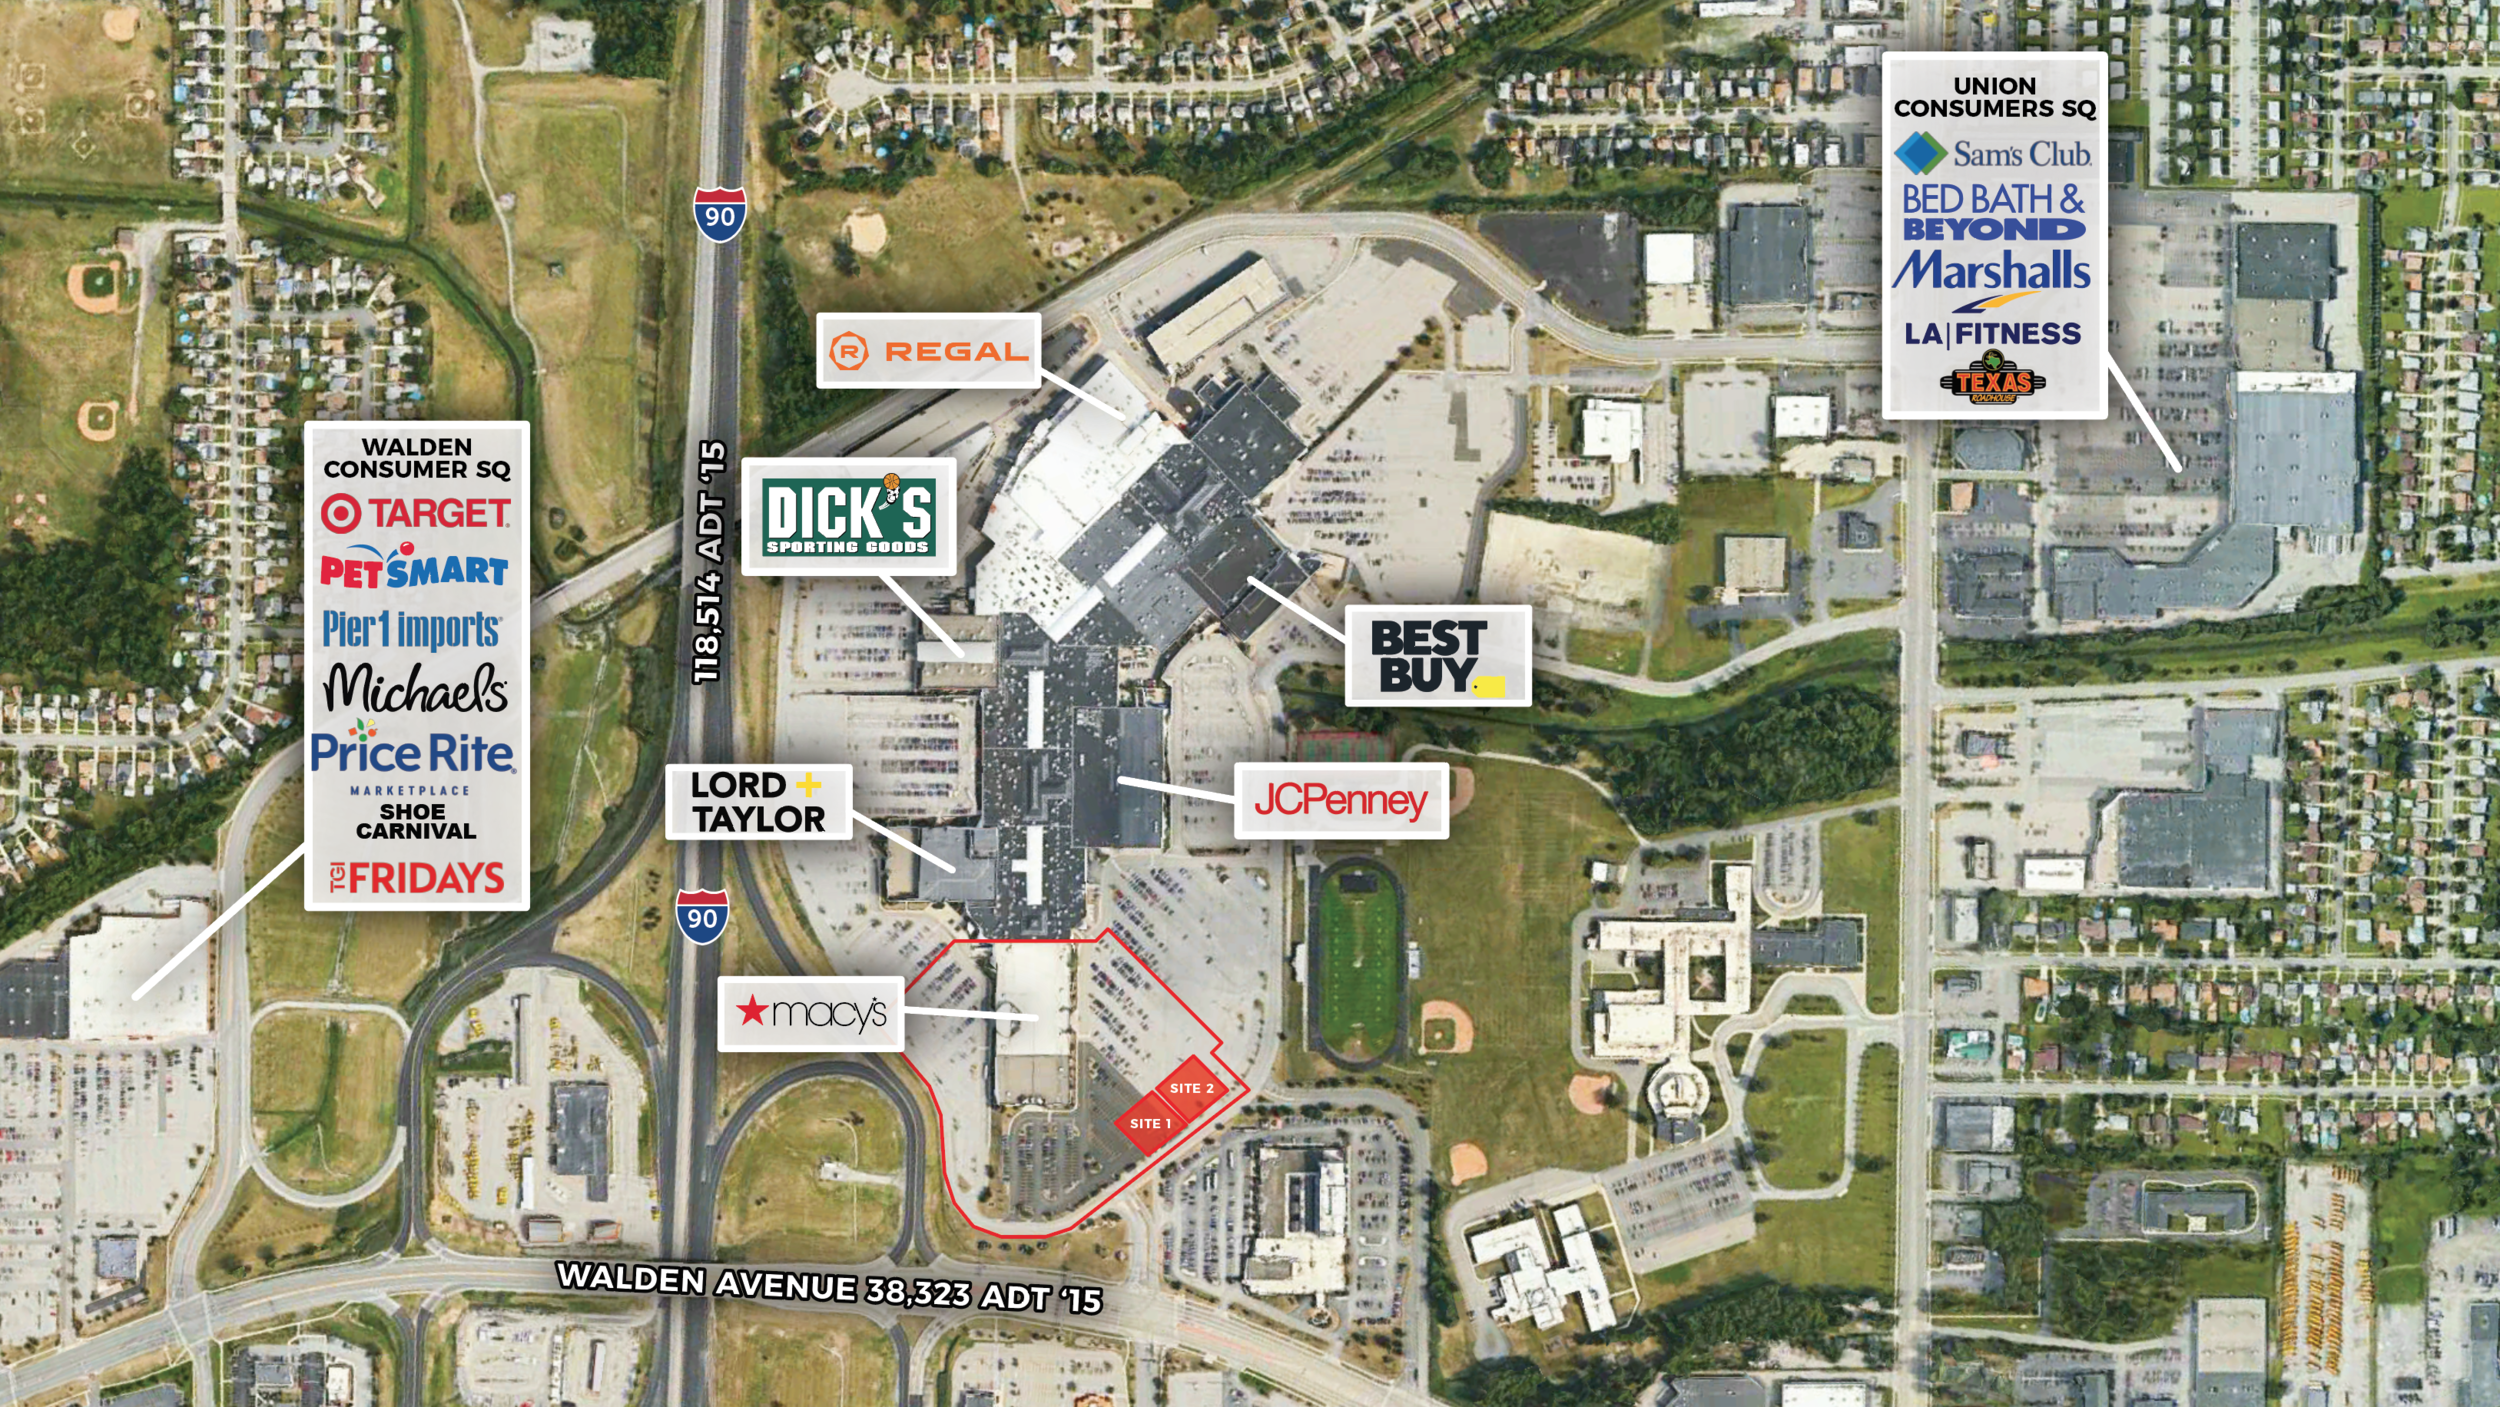 Location: Cheektowaga, New York Size: 52,600 SF